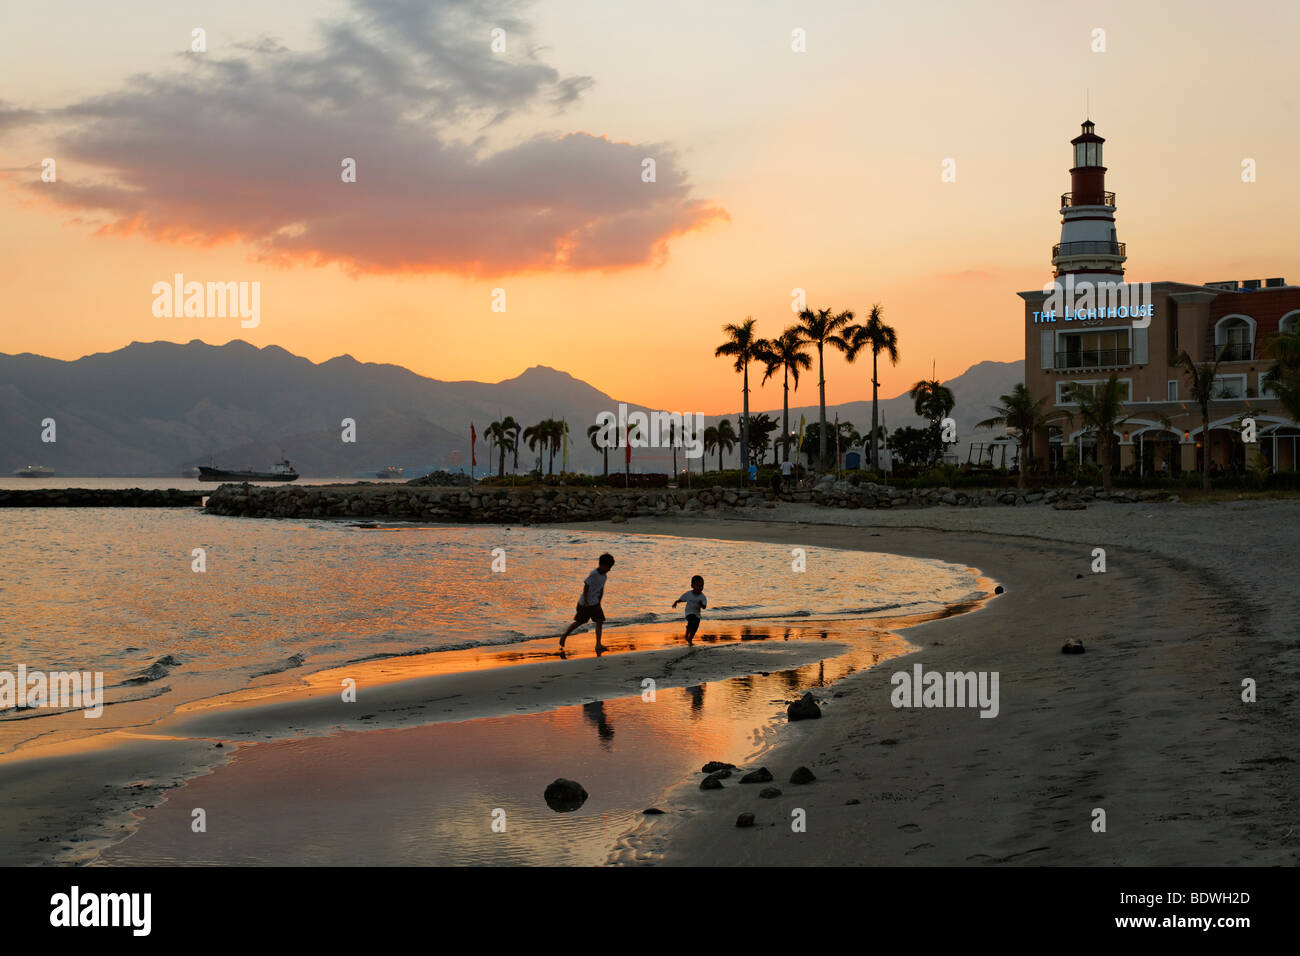 Children playing on the beach in the evening, lighthouse, boat, banka, palm trees, romantic mood, Olongapo City, - Stock Image